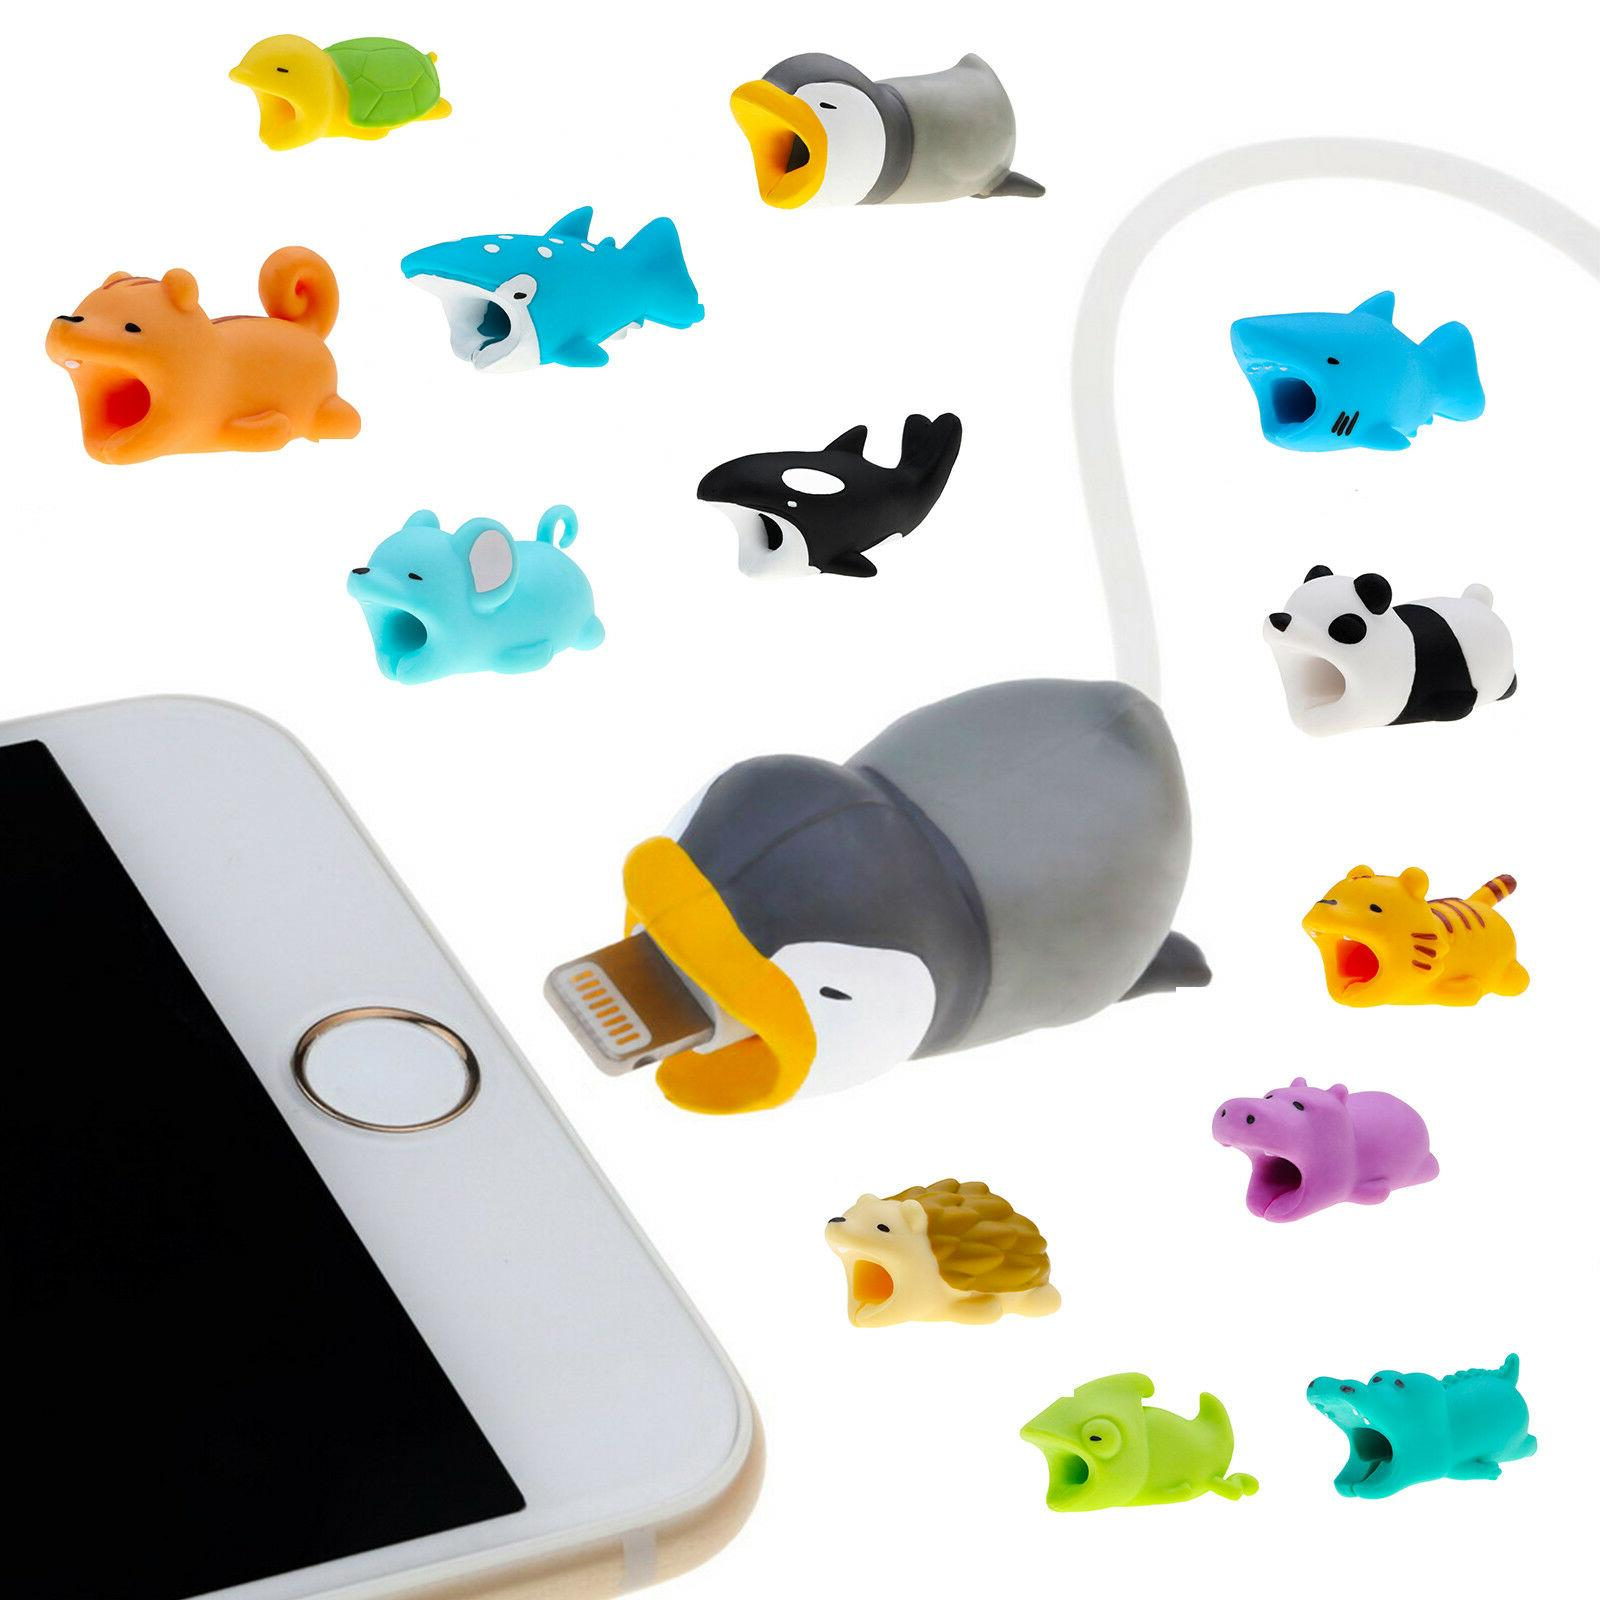 Animal Bites Cable Protector Accessory for iPhone Smartphone